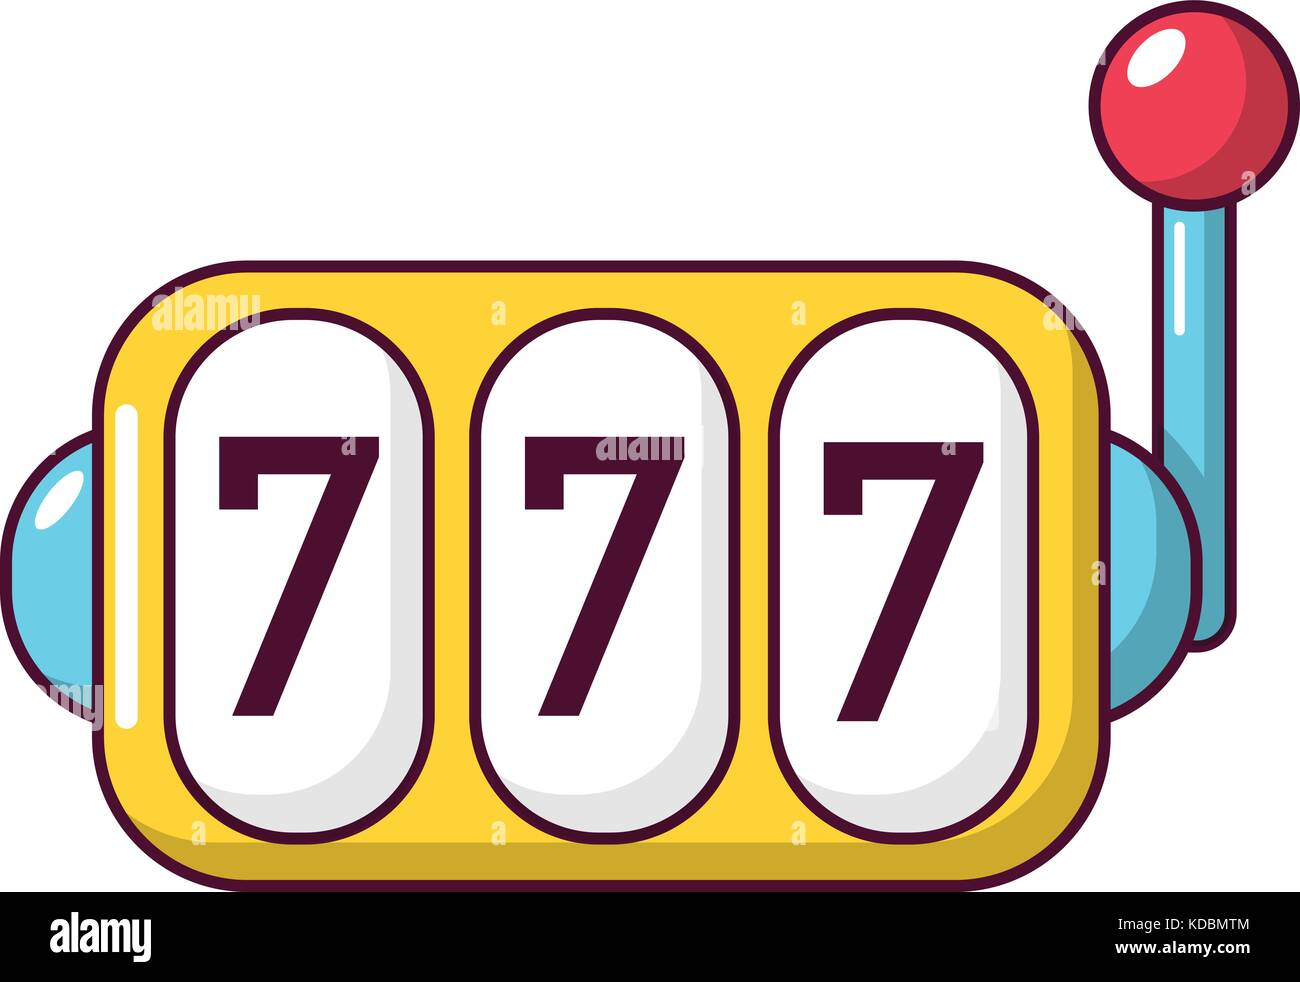 Buzzluck casino free spins